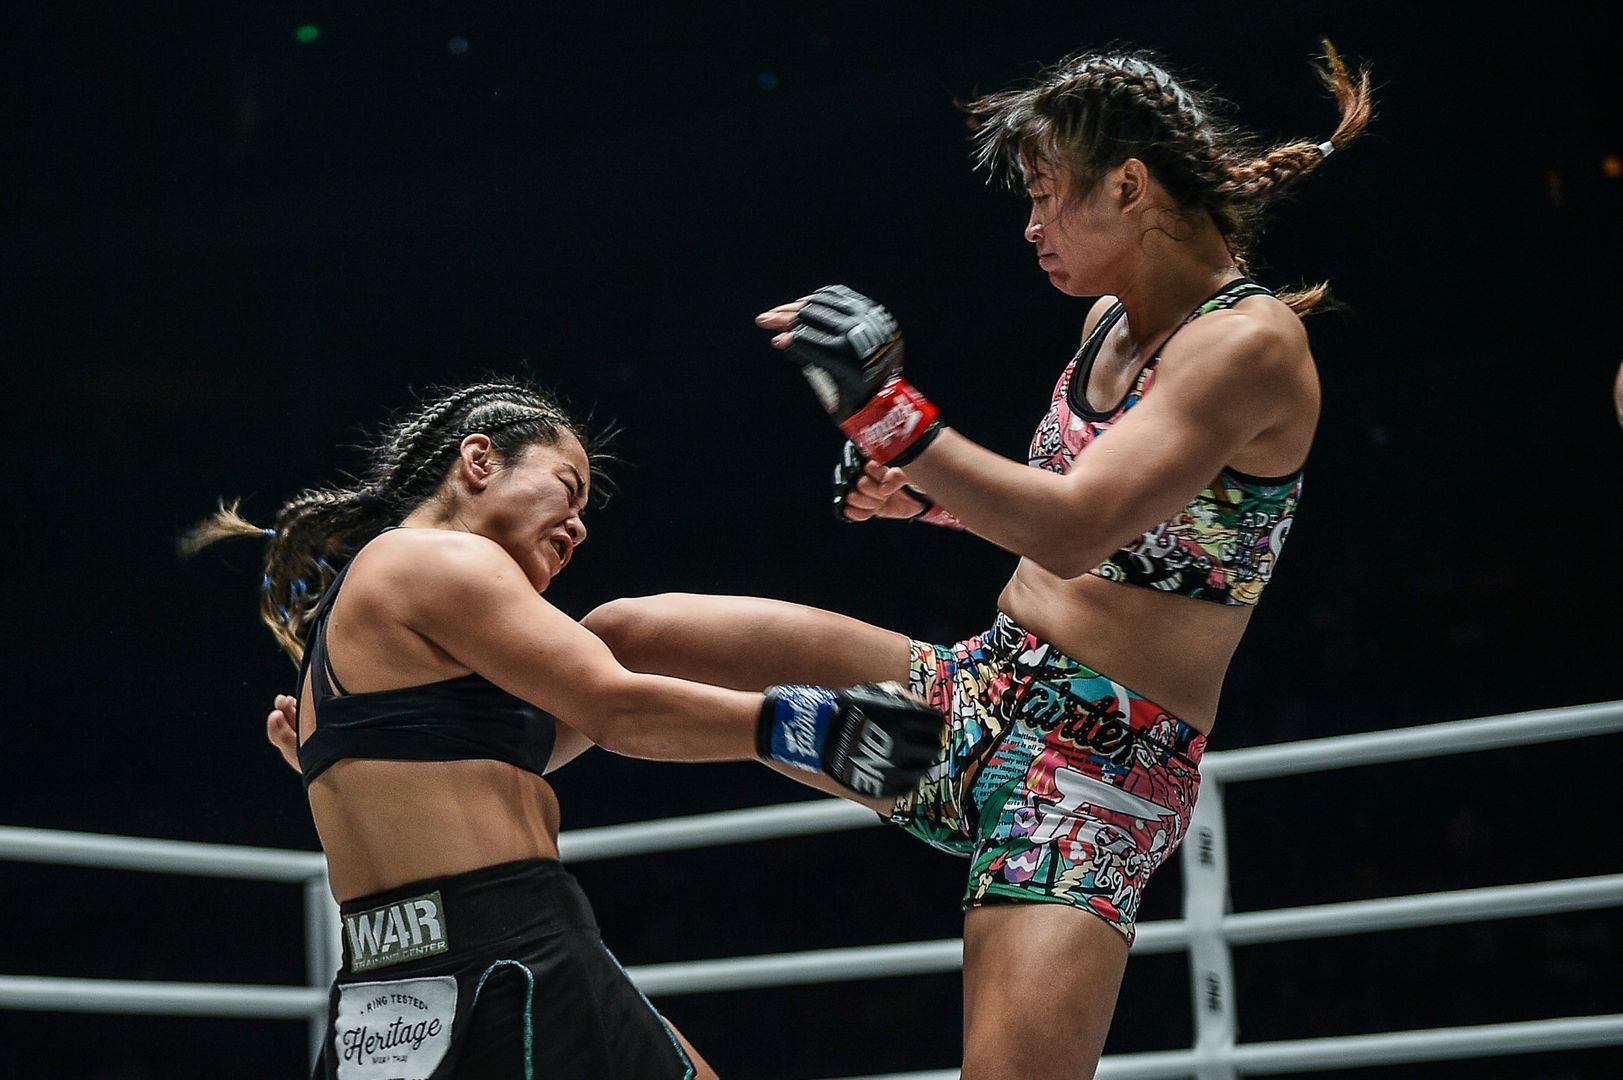 Stamp Fairtex kicks Bi Nguyen